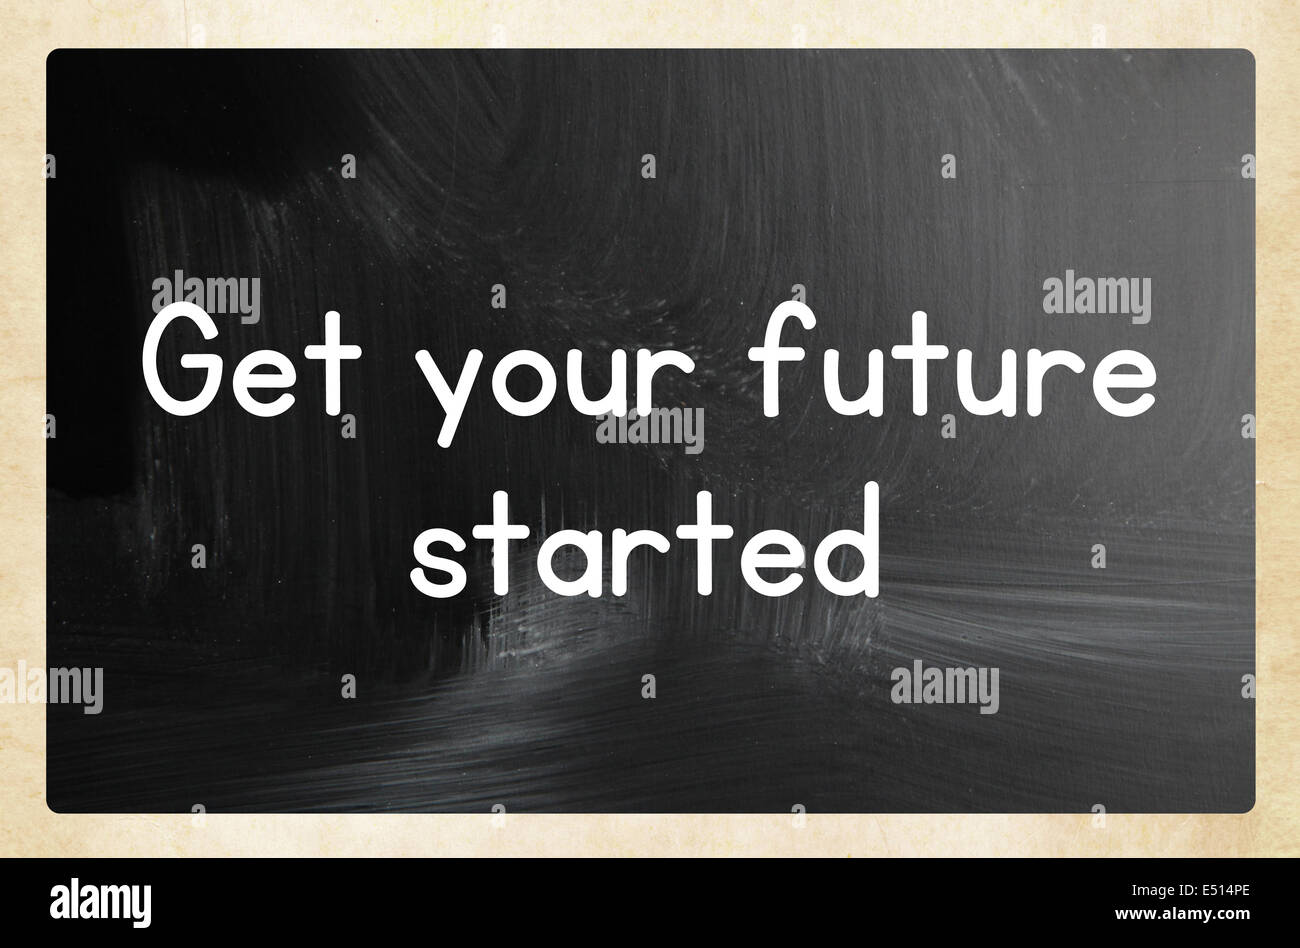 get your future started concept - Stock Image